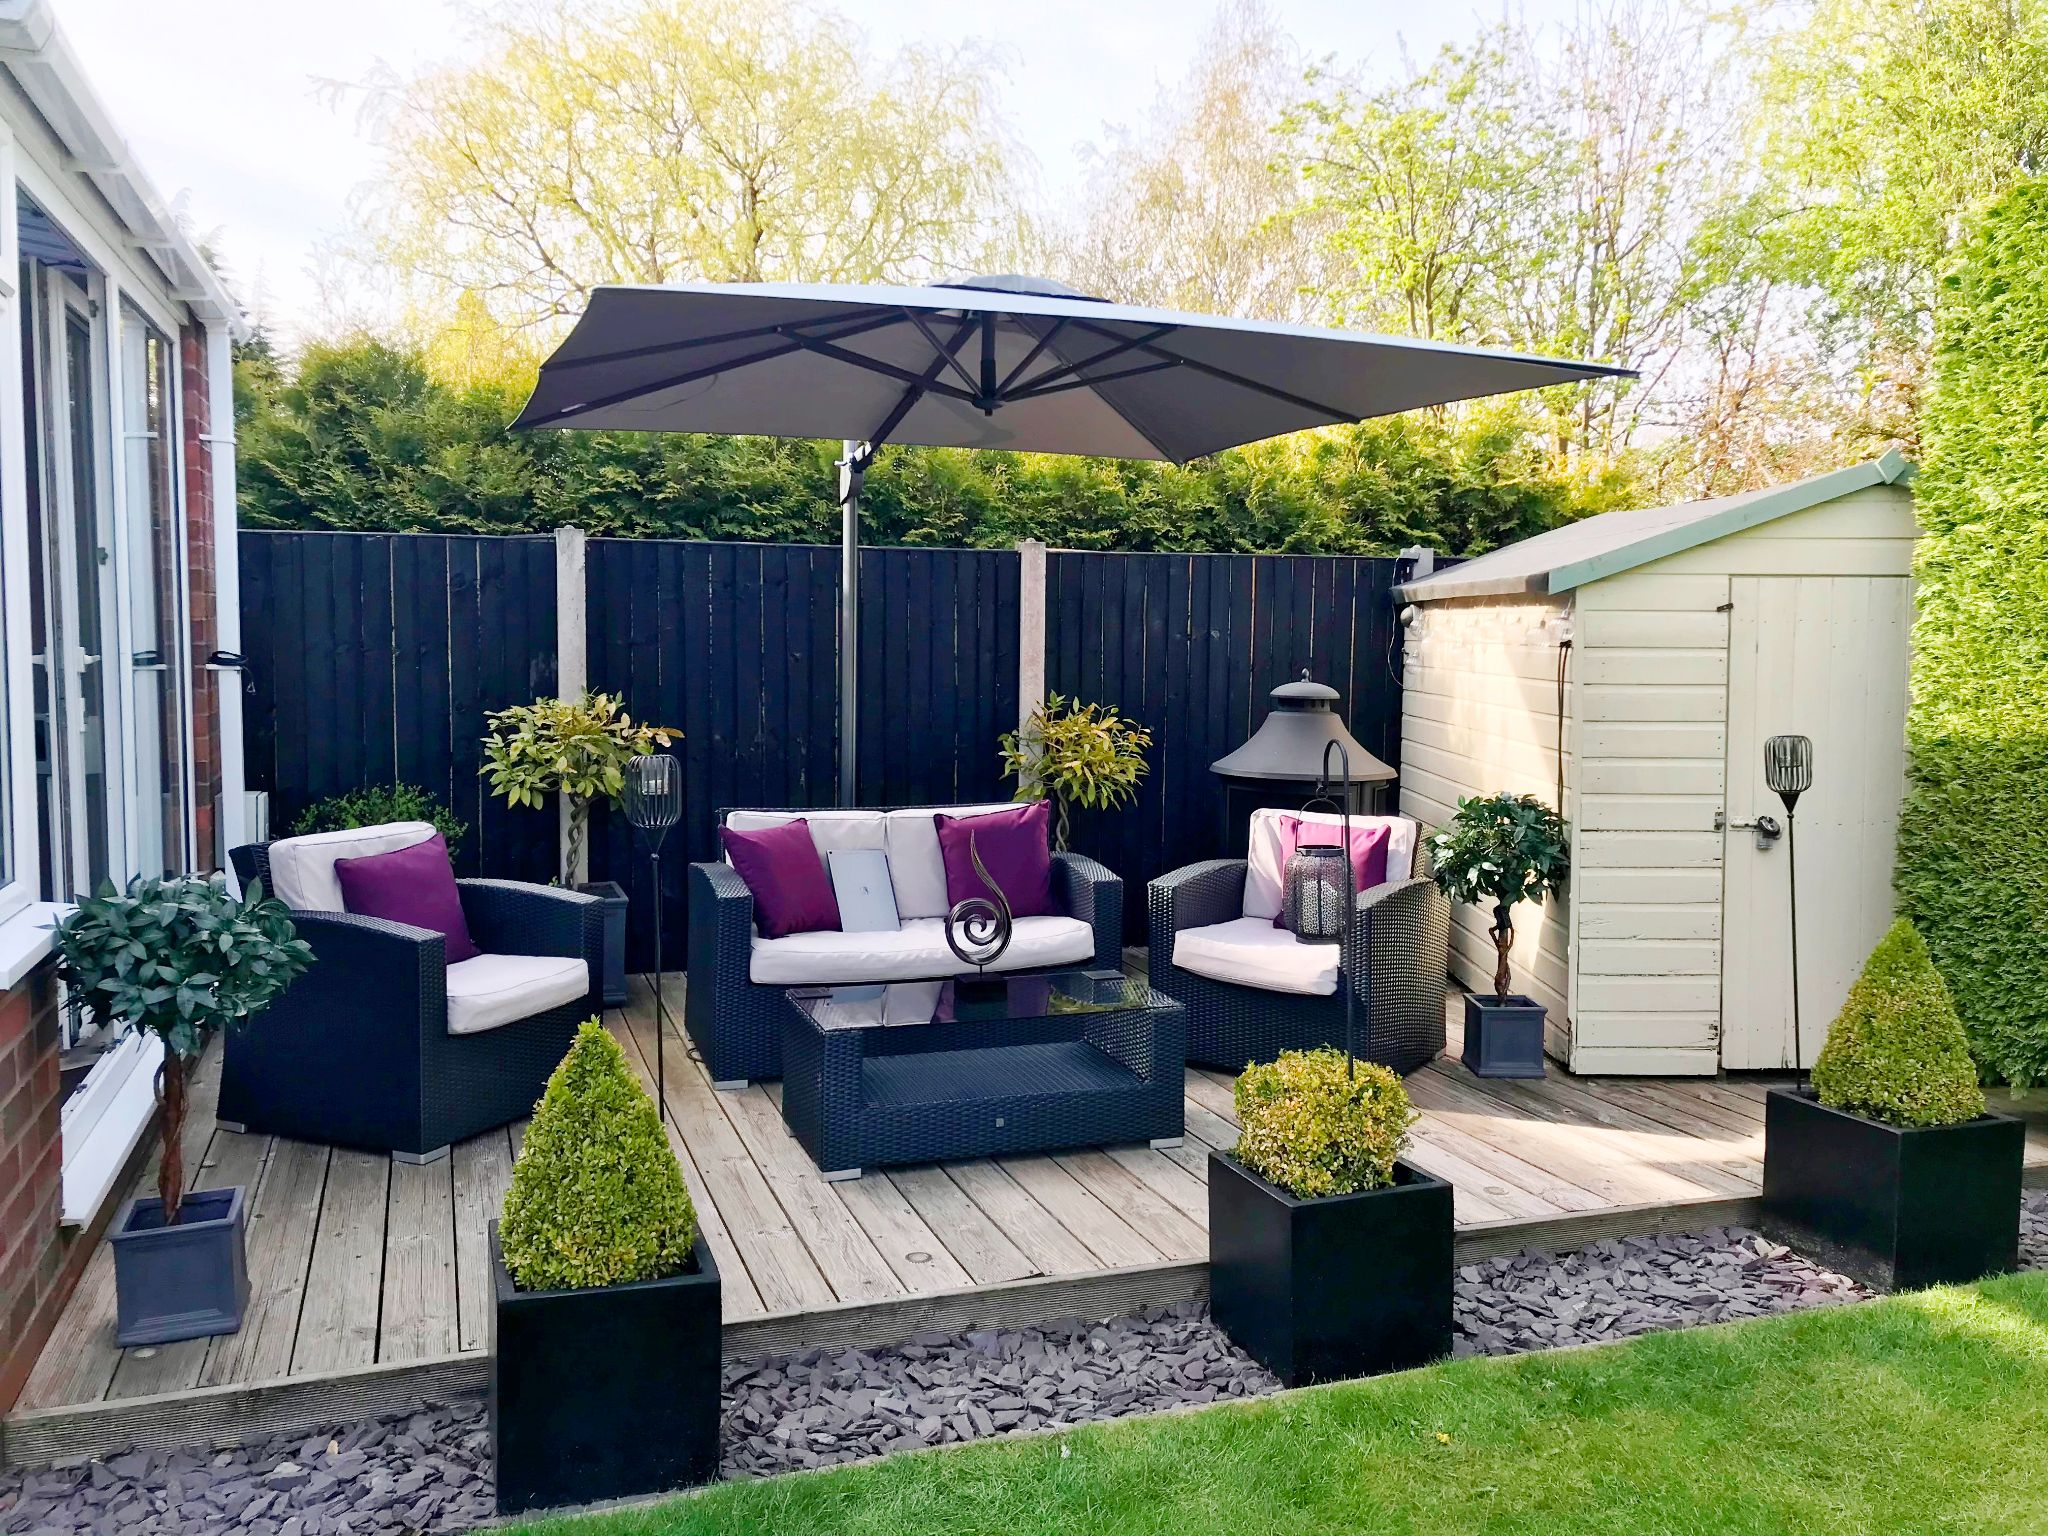 5 Bedroom Semi-detached House For Sale - Decking Area